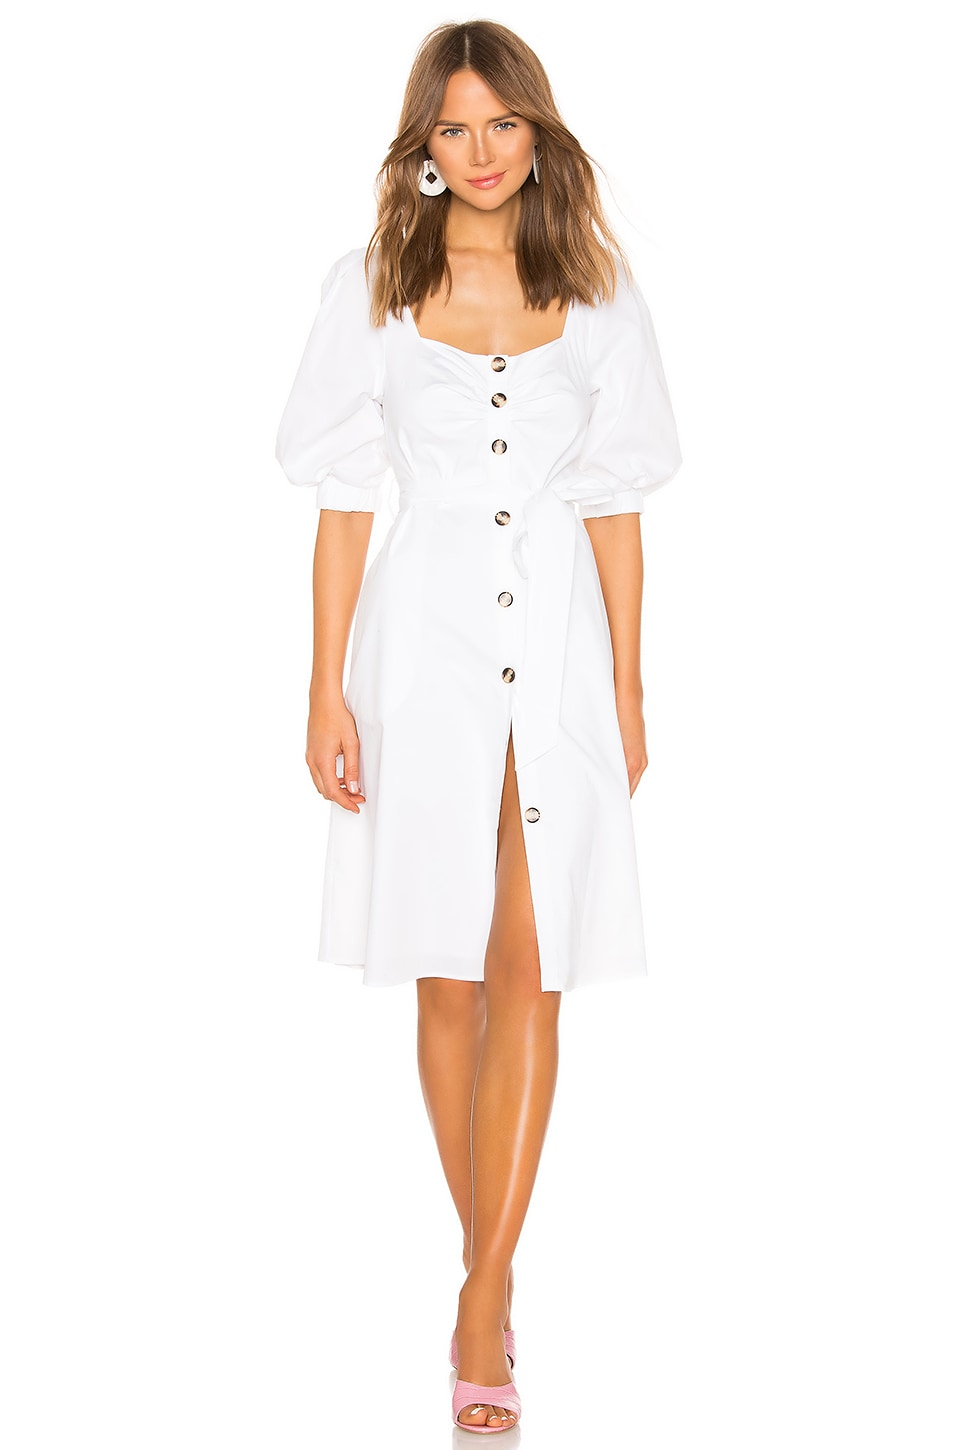 LPA Aida Dress in White